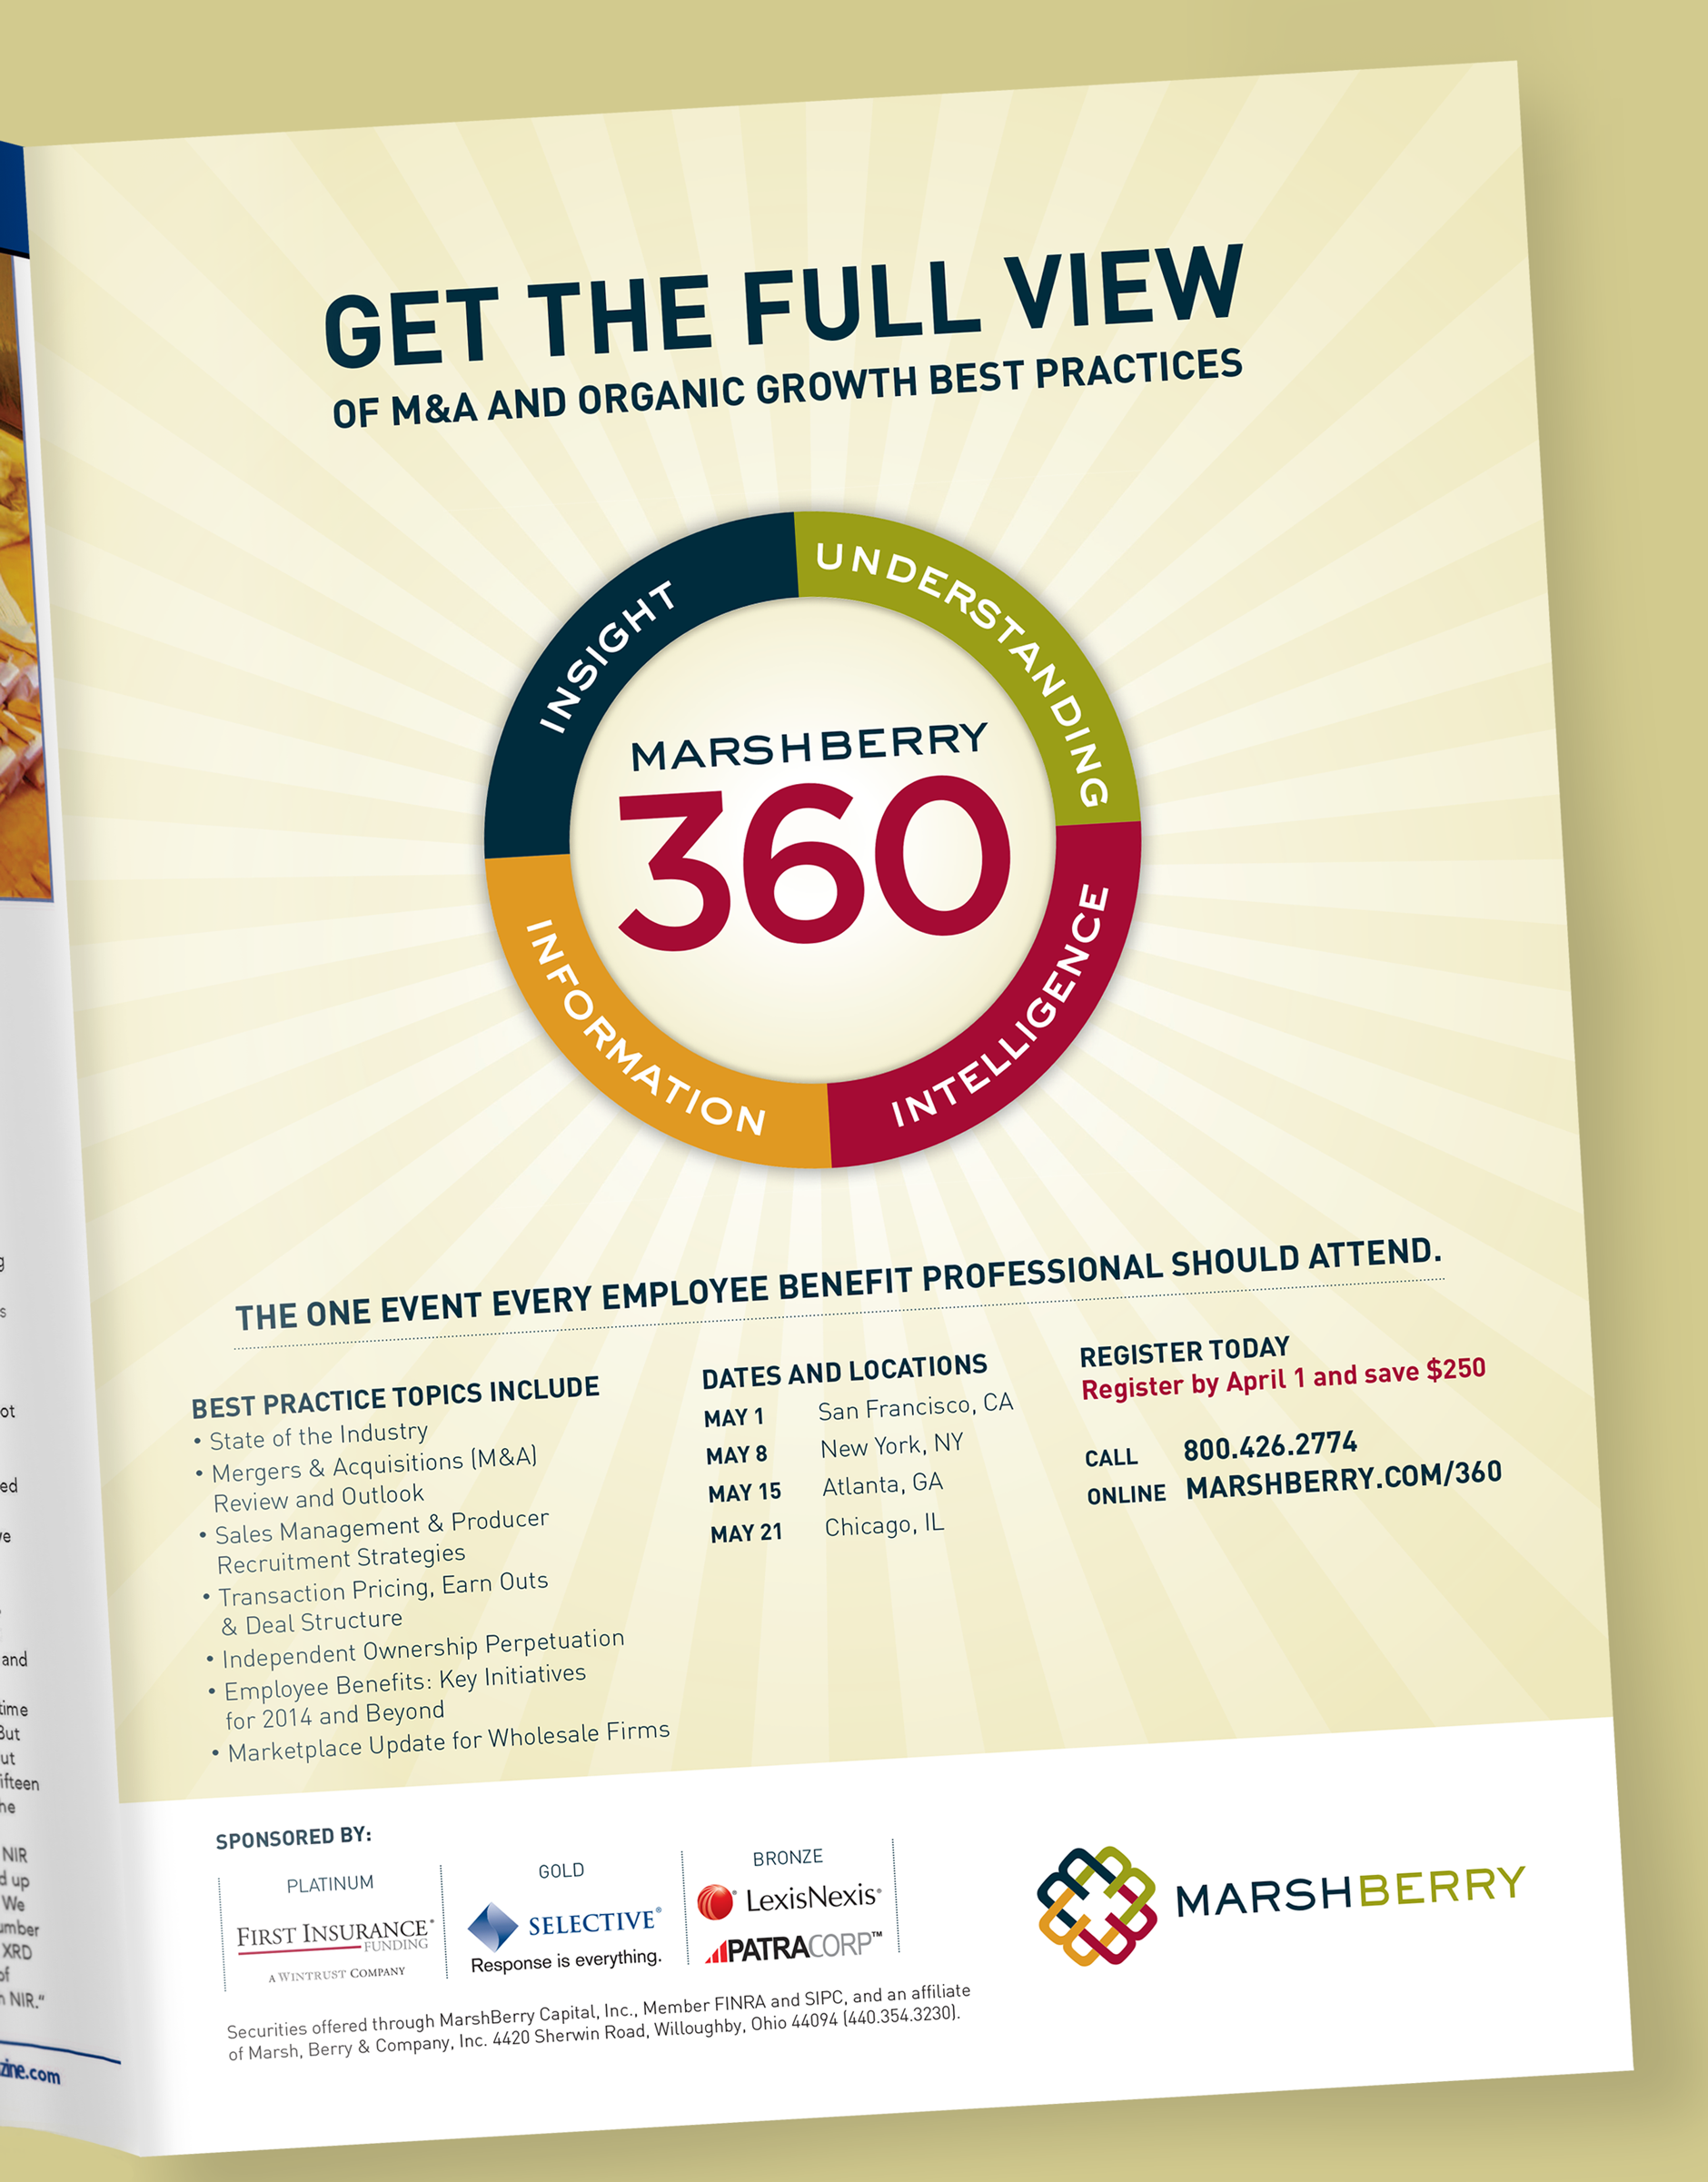 MarshBerry 360 Design and Campaign Ad | Rebranding